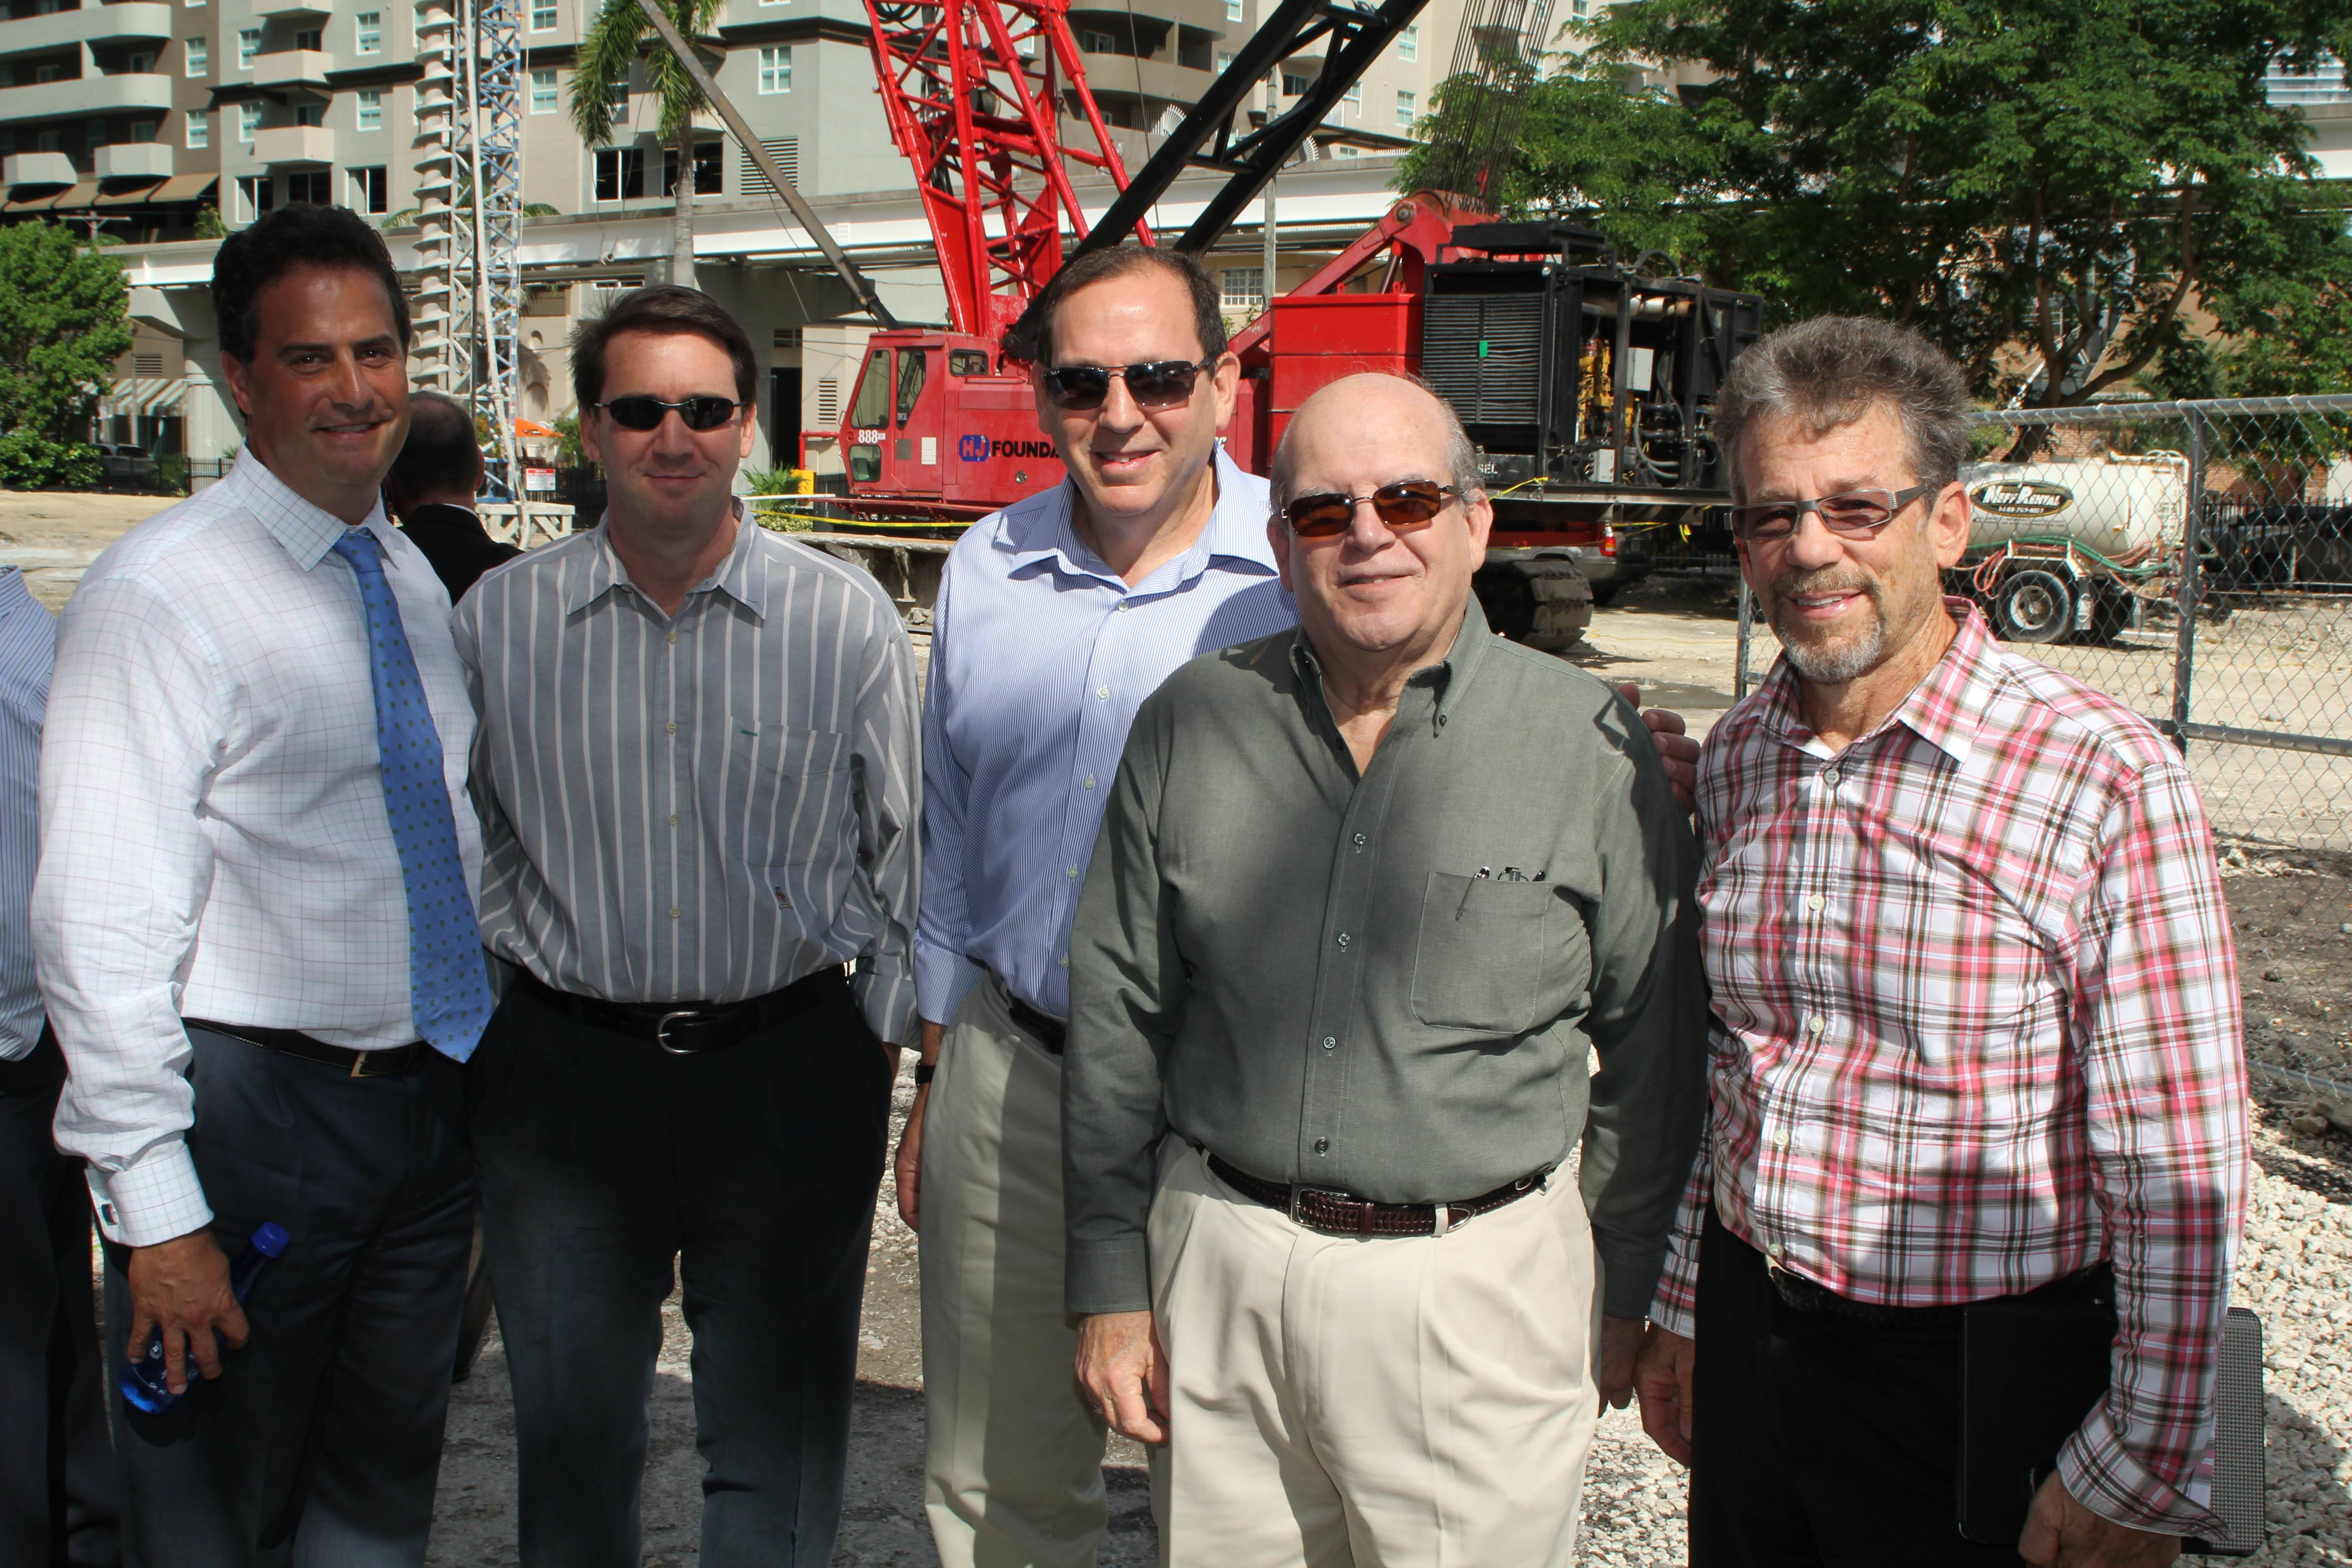 Jim Werbelow, Sandy Peaceman, Larry Freedman, Bill Encinosa, Steve Feller